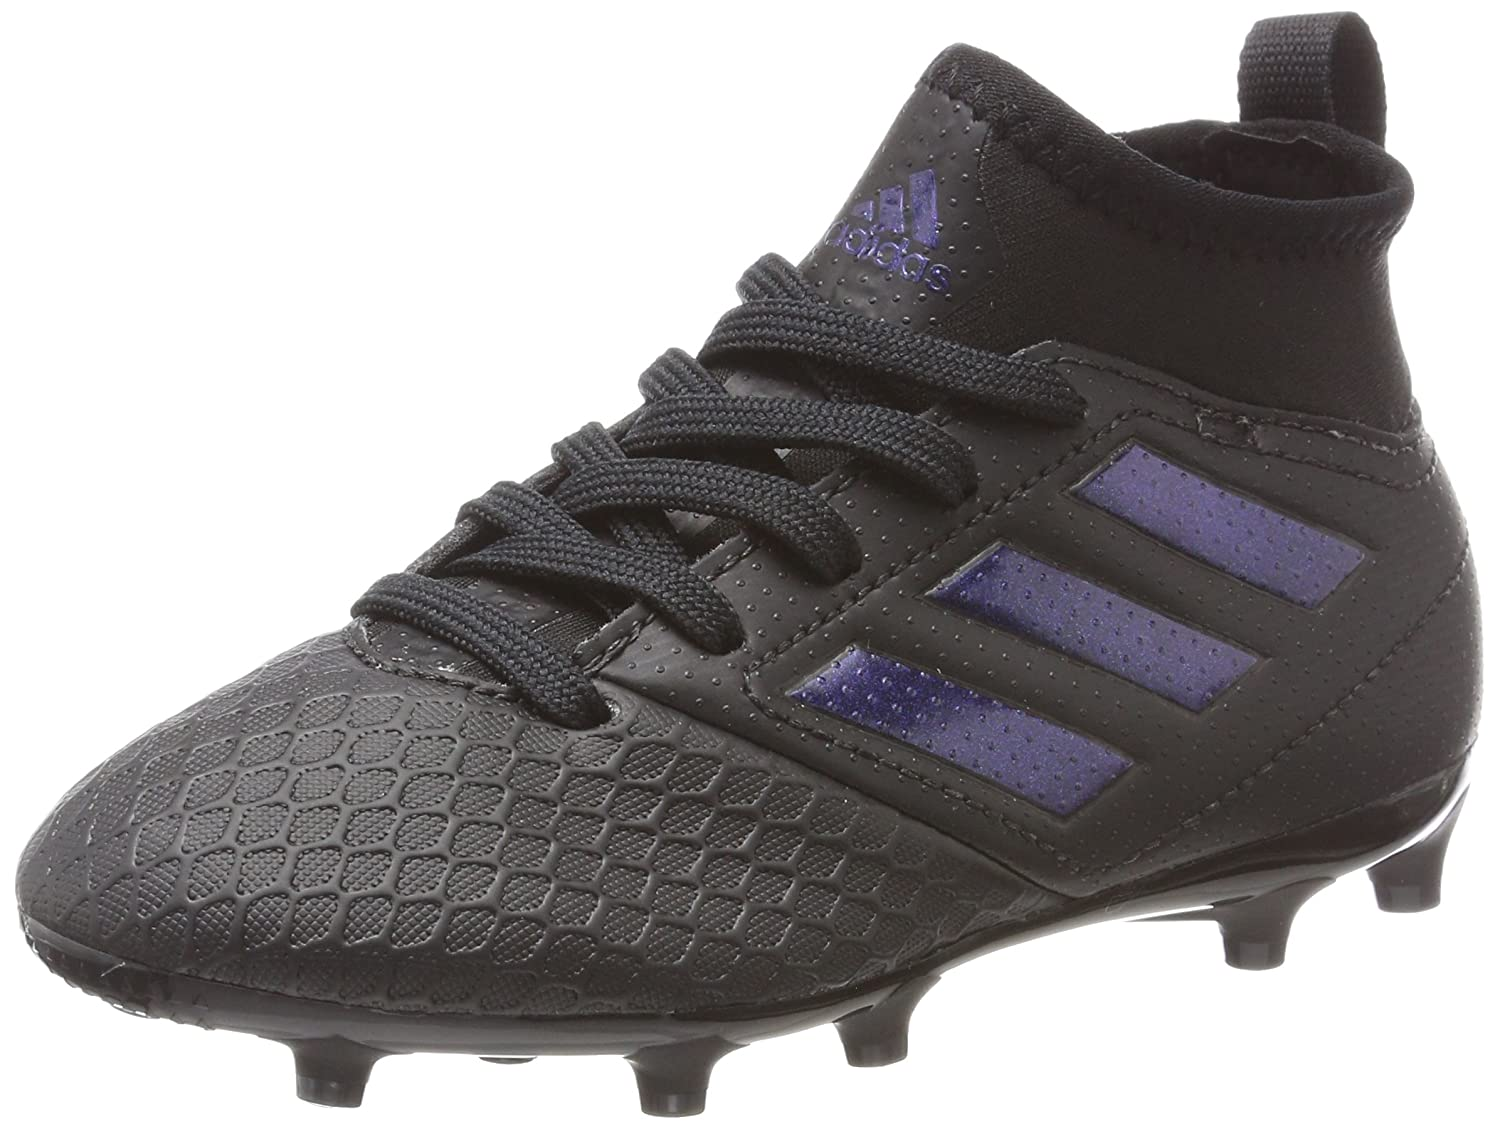 adidas Ace 17.3 FG J, Chaussures de Football garçon adidas Performance BA9234/S77067/S77069